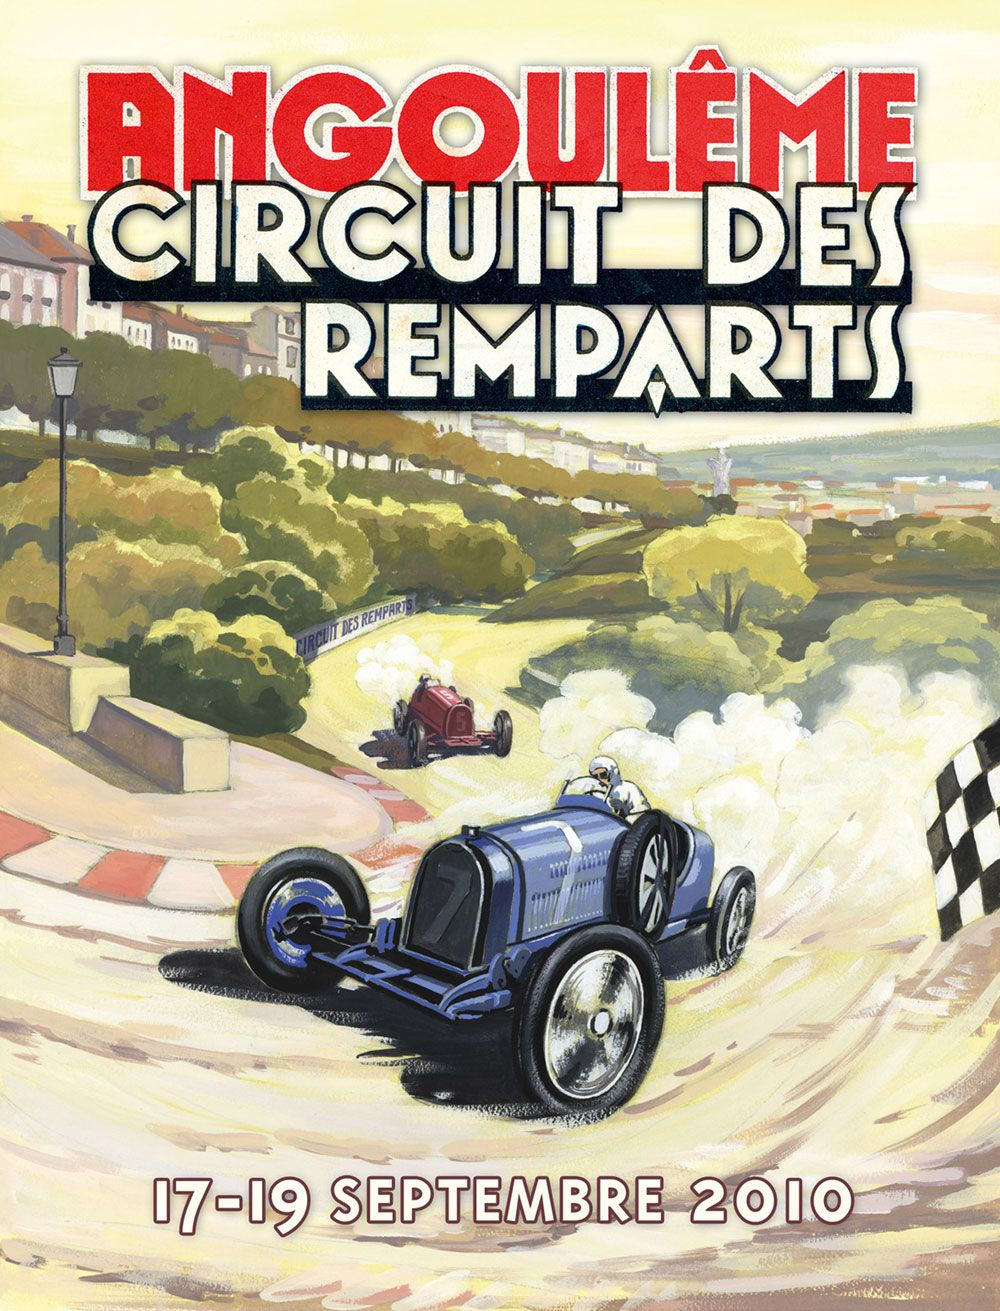 angouleme circuit des remparts 2010 art pinterest france travel and travel posters. Black Bedroom Furniture Sets. Home Design Ideas